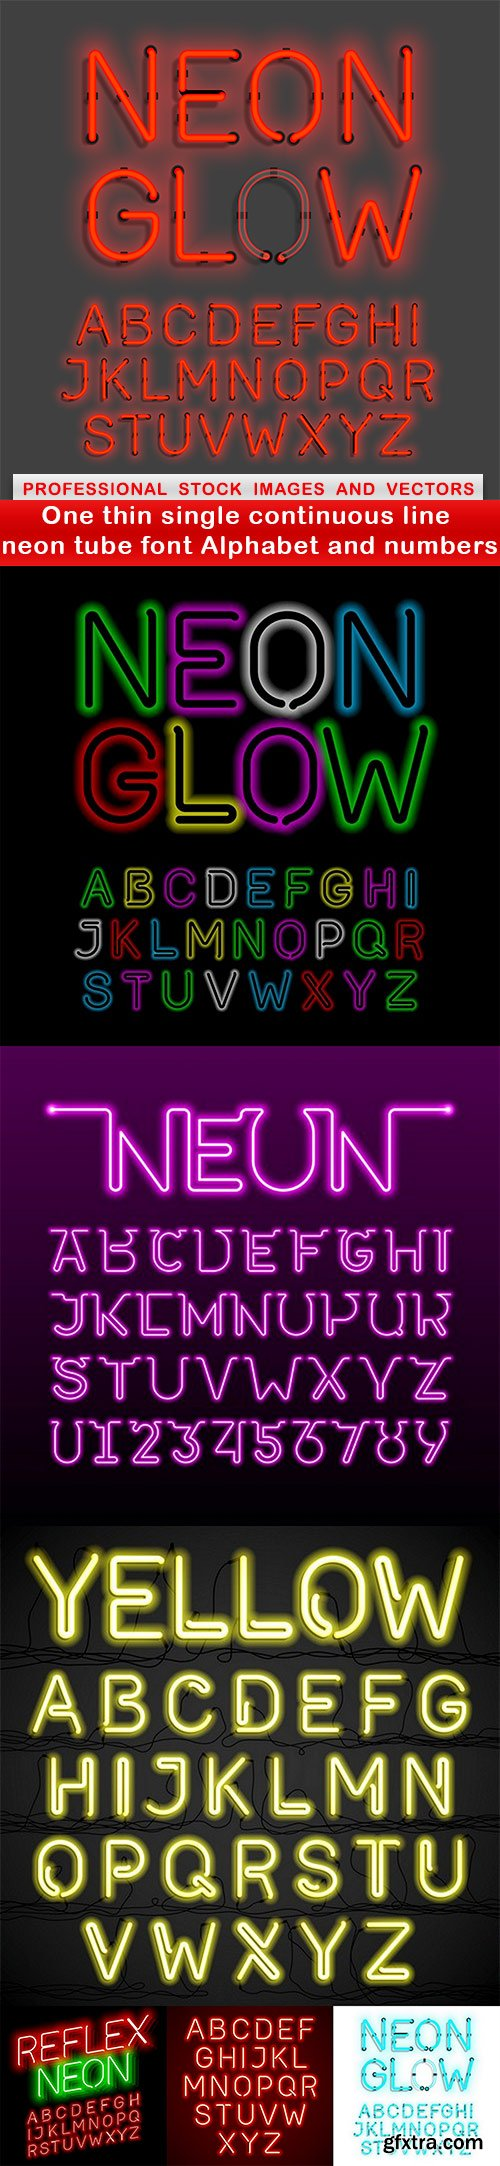 One thin single continuous line neon tube font Alphabet and numbers - 7 EPS